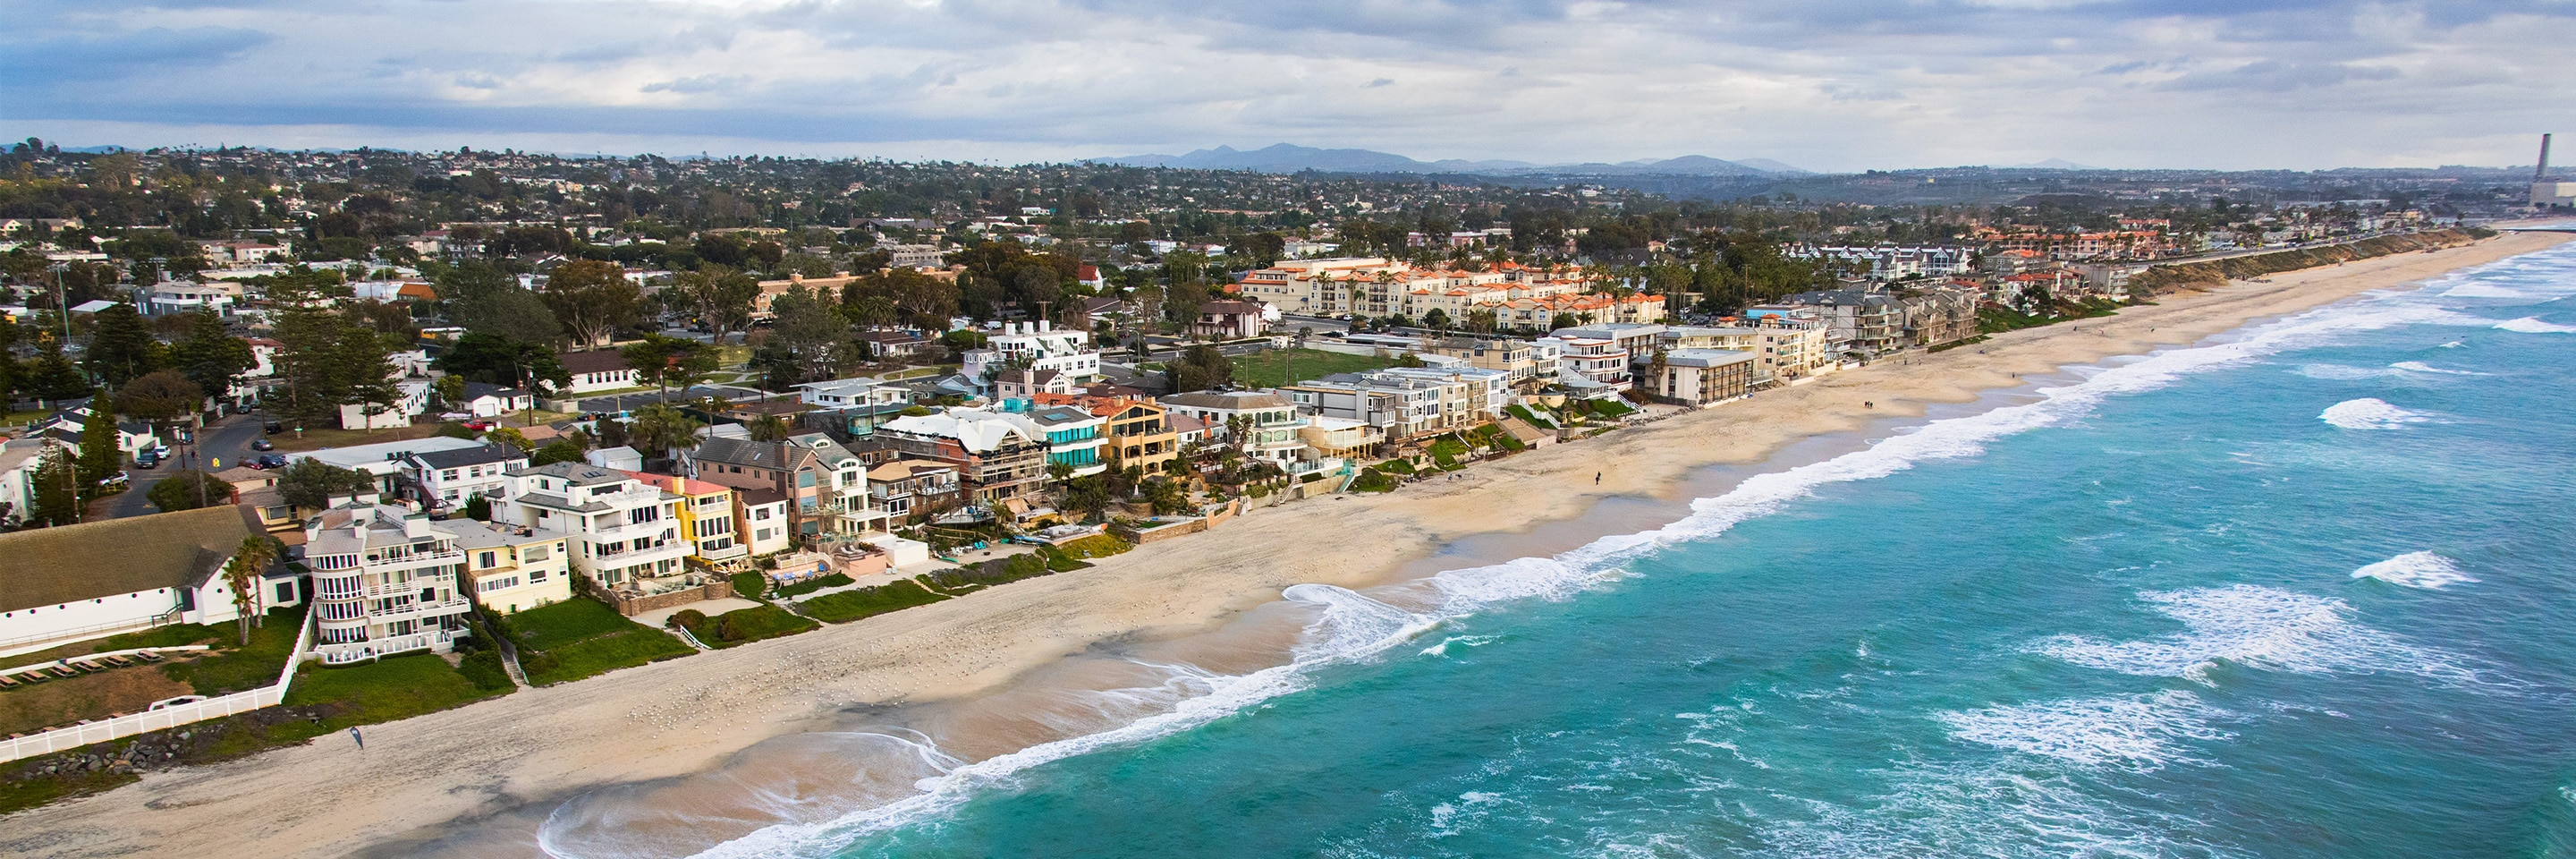 Hotels in Carlsbad